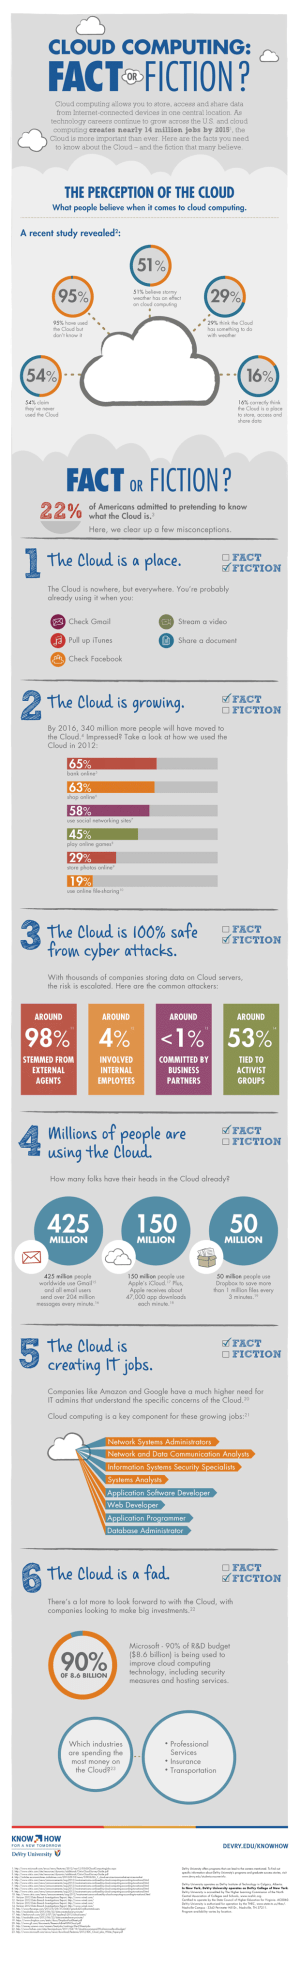 cloud-fact-fiction-infographic